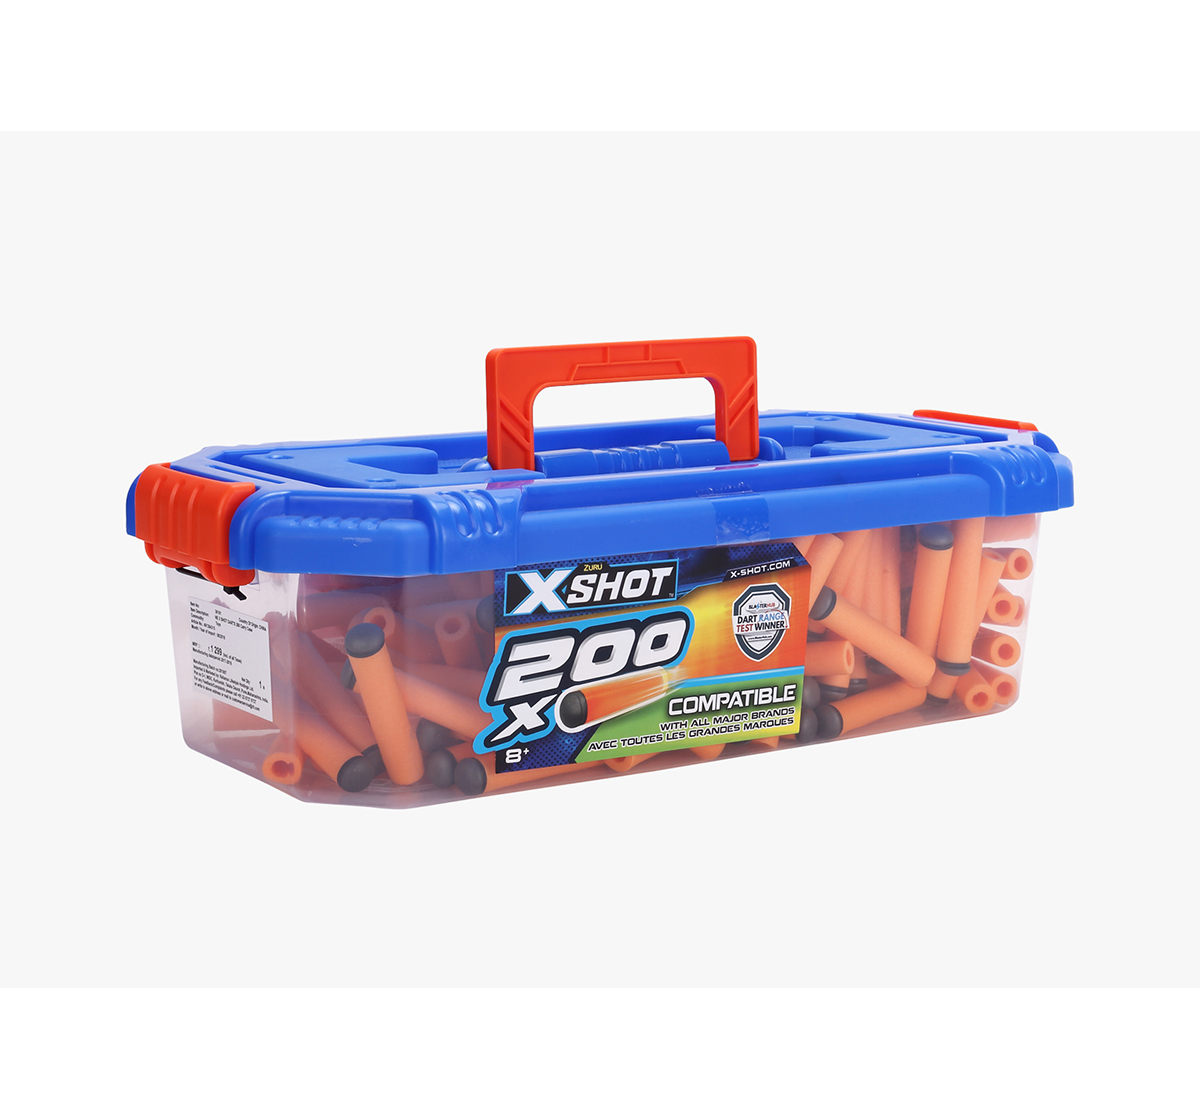 X-Shot | X-Shot 200 Darts Refill with Carry Case Target Games  for Kids age 8Y+ (Orange)